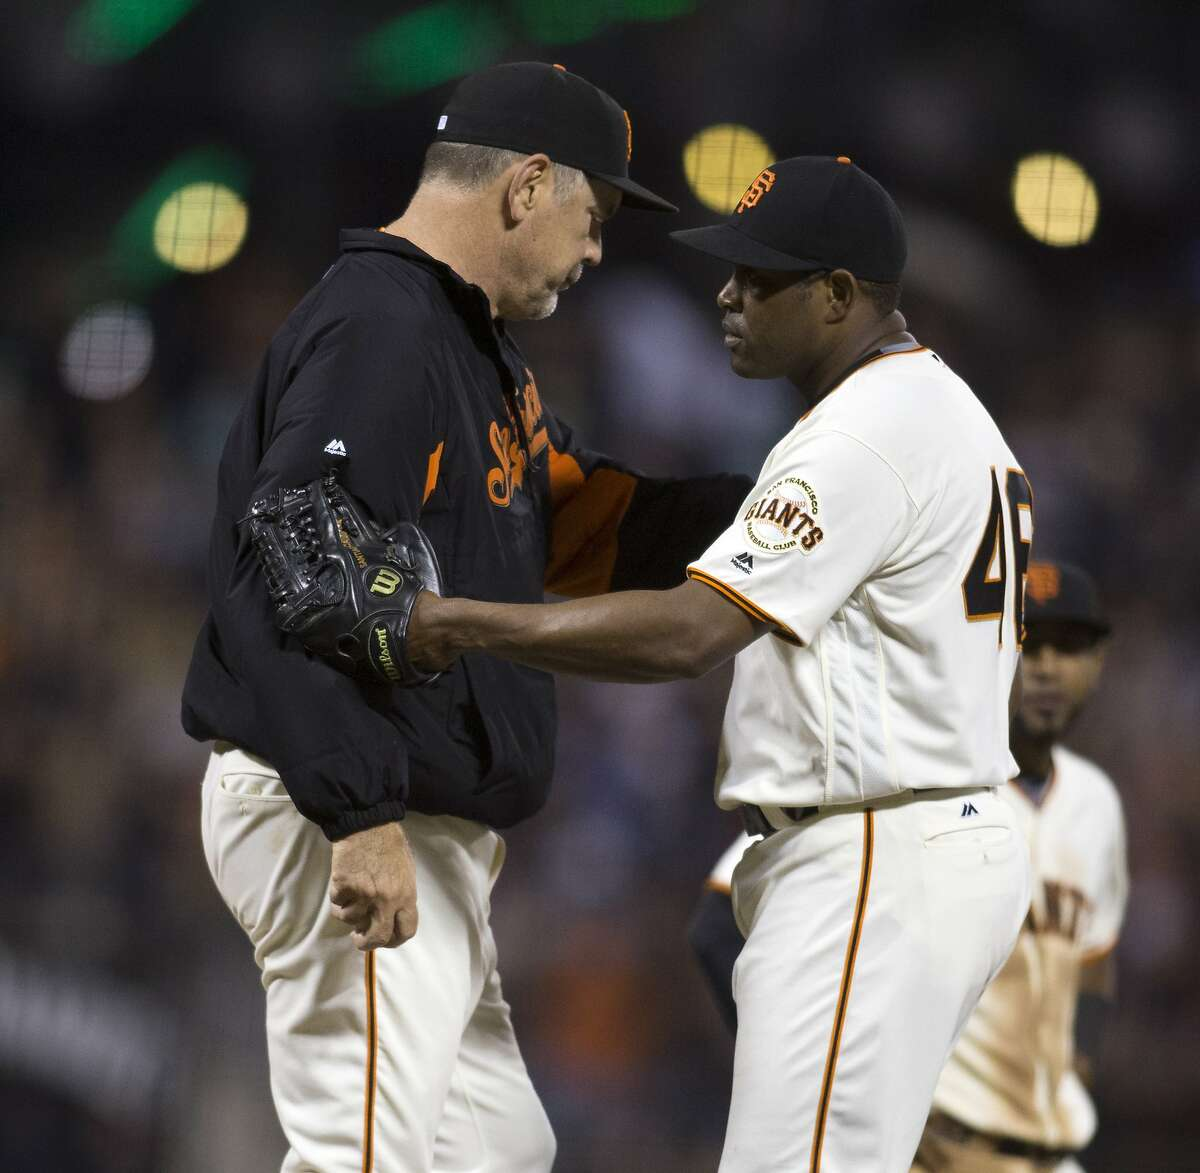 San Francisco Giants manager Bruce Bochy, left, takes the ball from reliever Santiago Casilla during the ninth inning of a baseball game against the St. Louis Cardinals, Saturday, Sept. 17, 2016, in San Francisco. Casilla was the losing pitcher as the Cardinals won 3-2. (AP Photo/D. Ross Cameron)